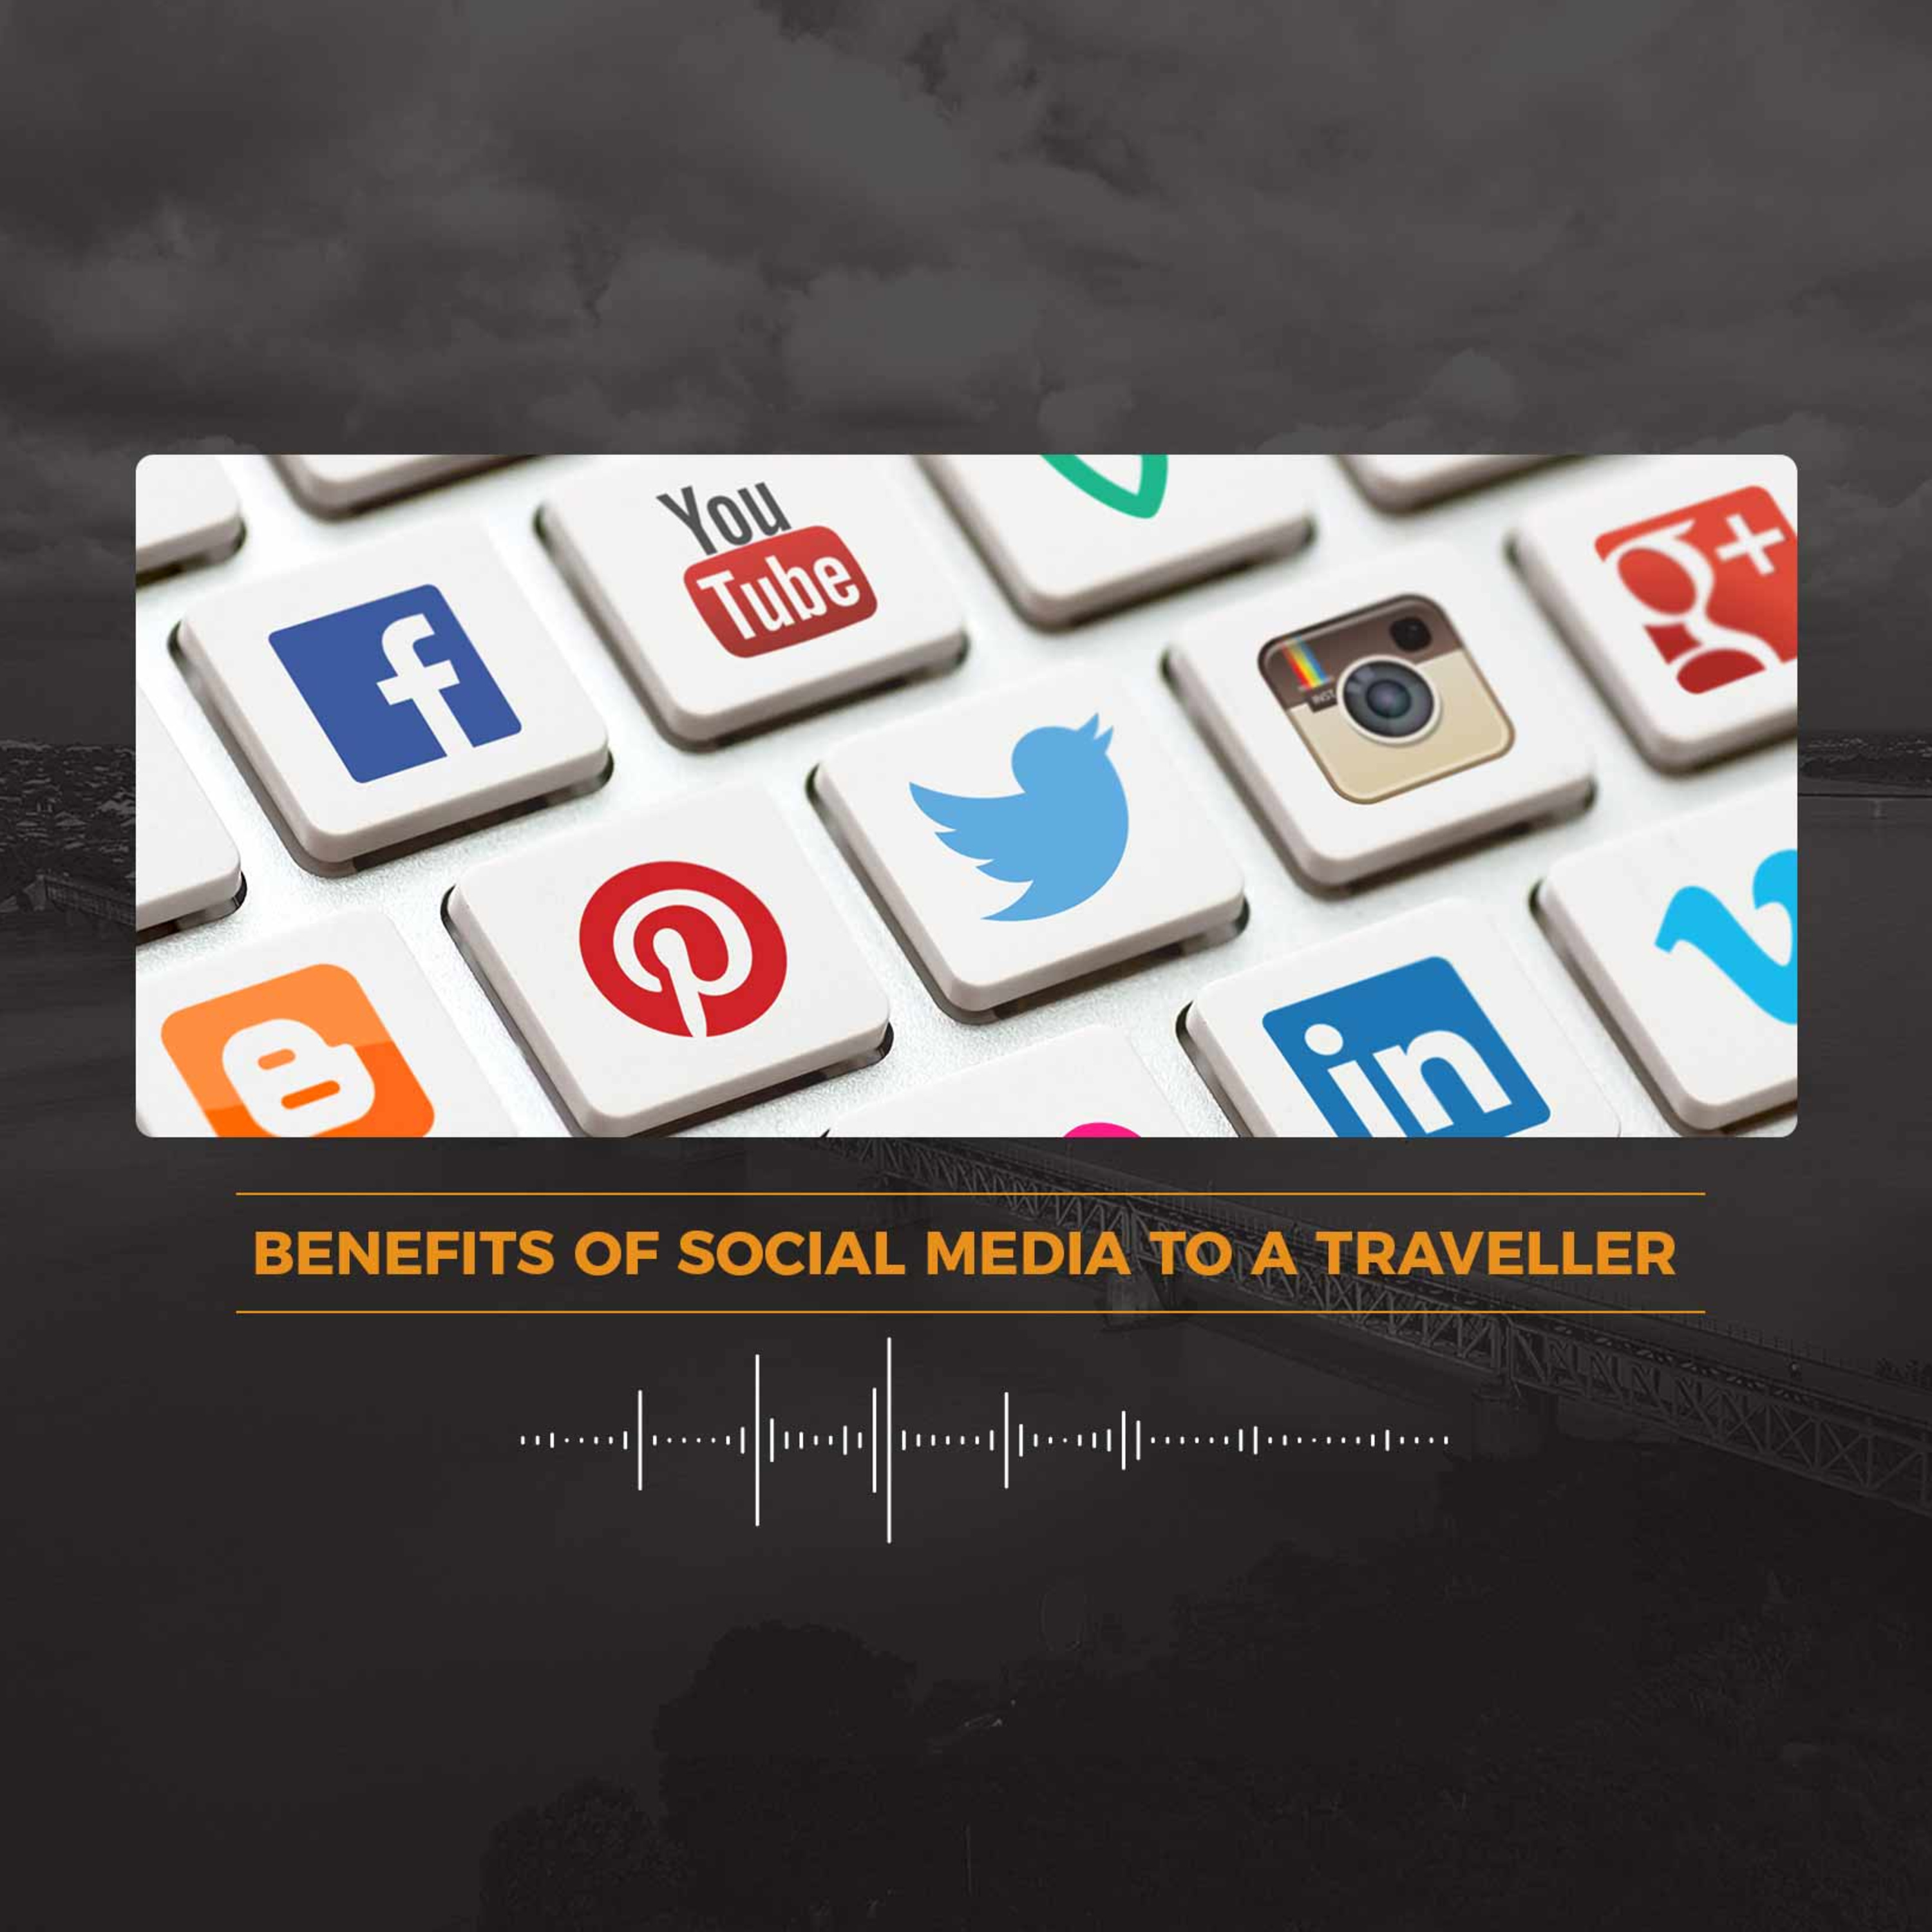 Benefits Of Social Media To A Traveller